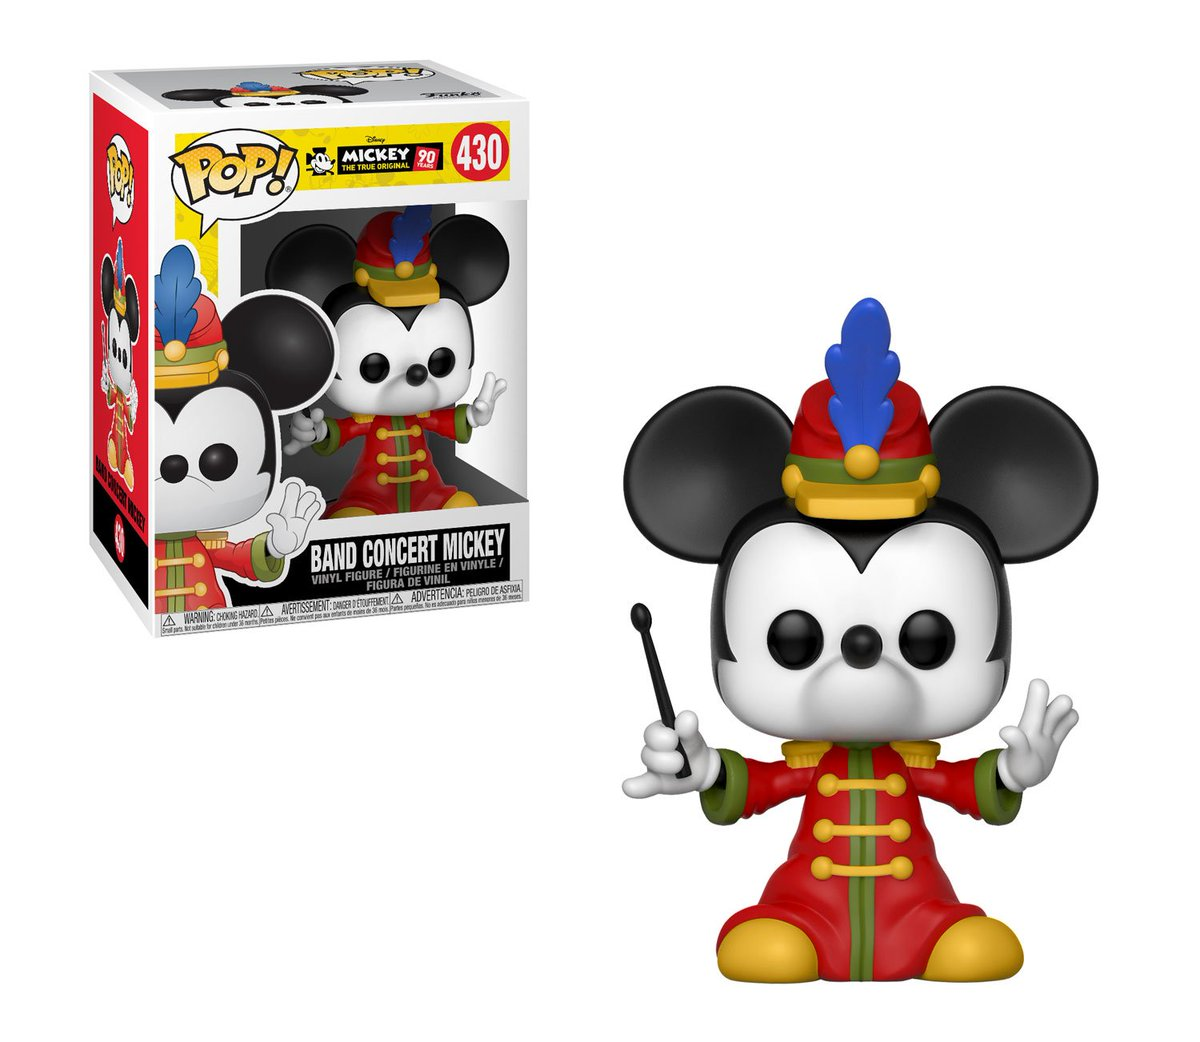 RT & follow @OriginalFunko for your chance at a Band Concert Mickey Mouse Pop! #Mickey90